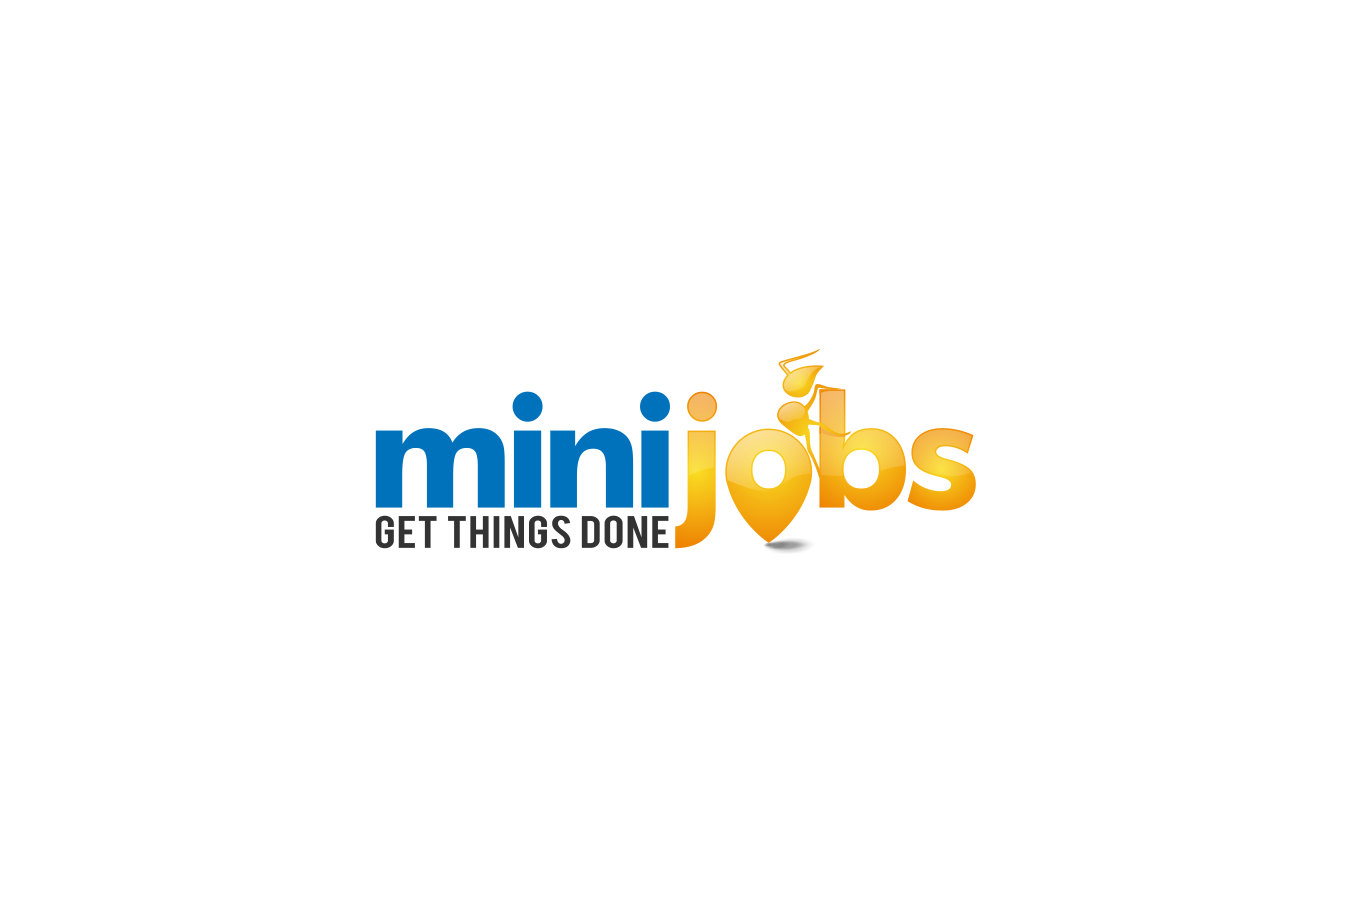 New logo wanted for minijobs